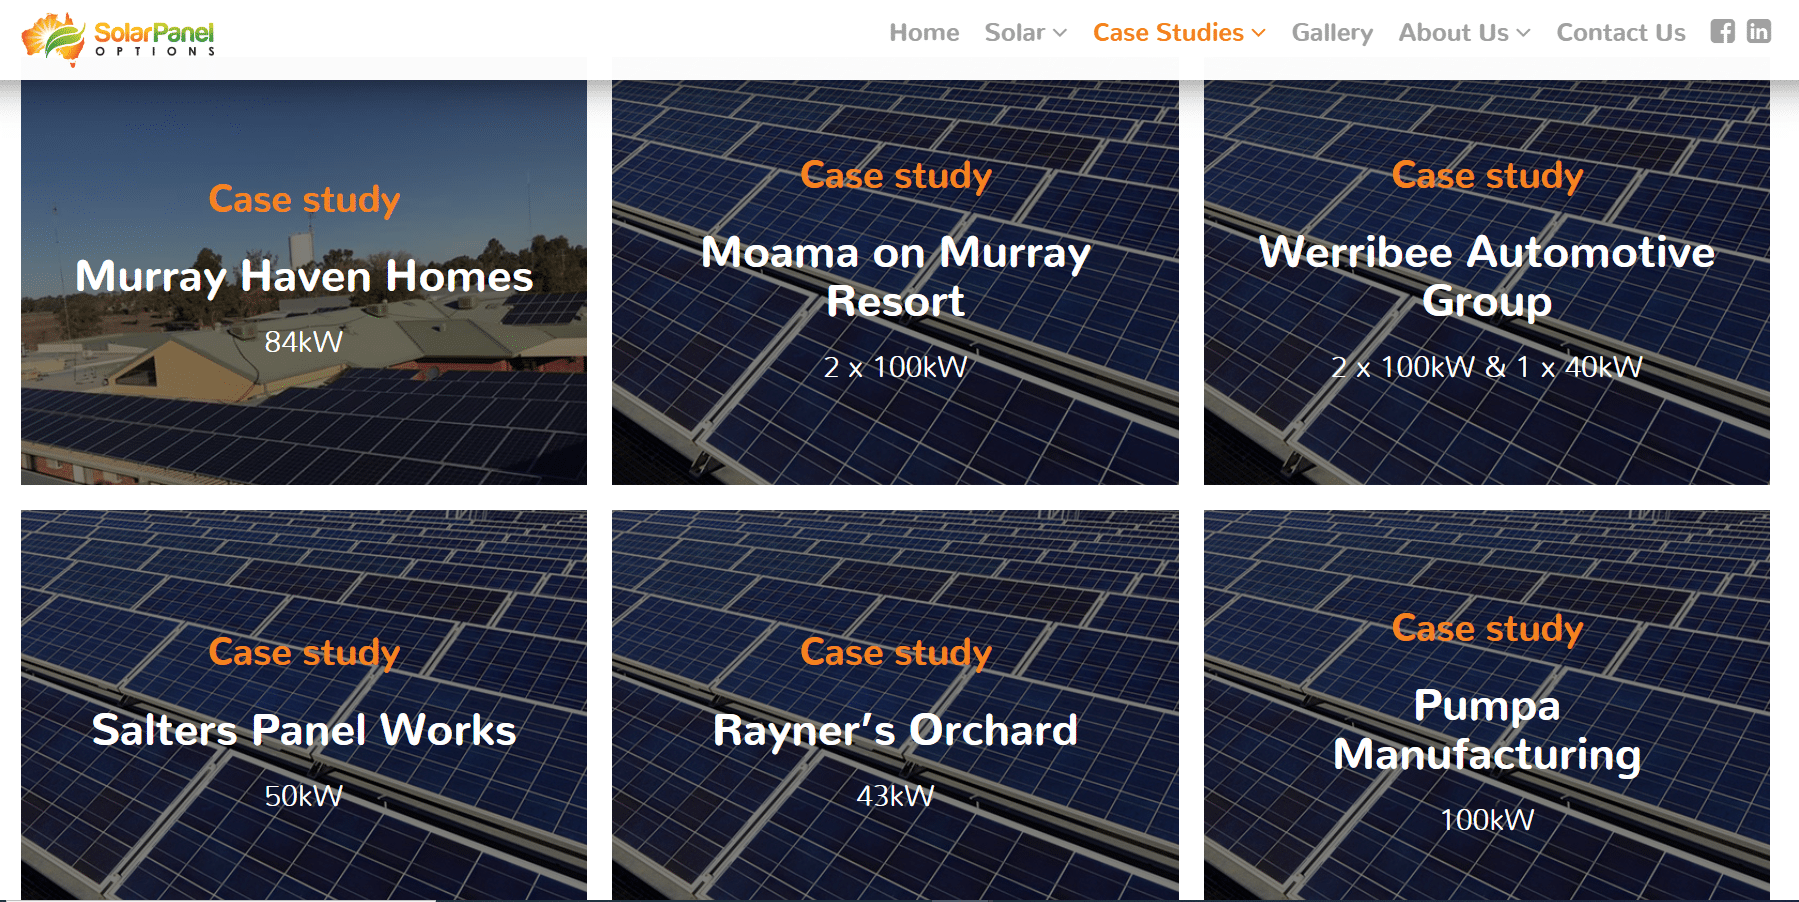 Case studies x 18: Solar Panel Options, for Mity Digital